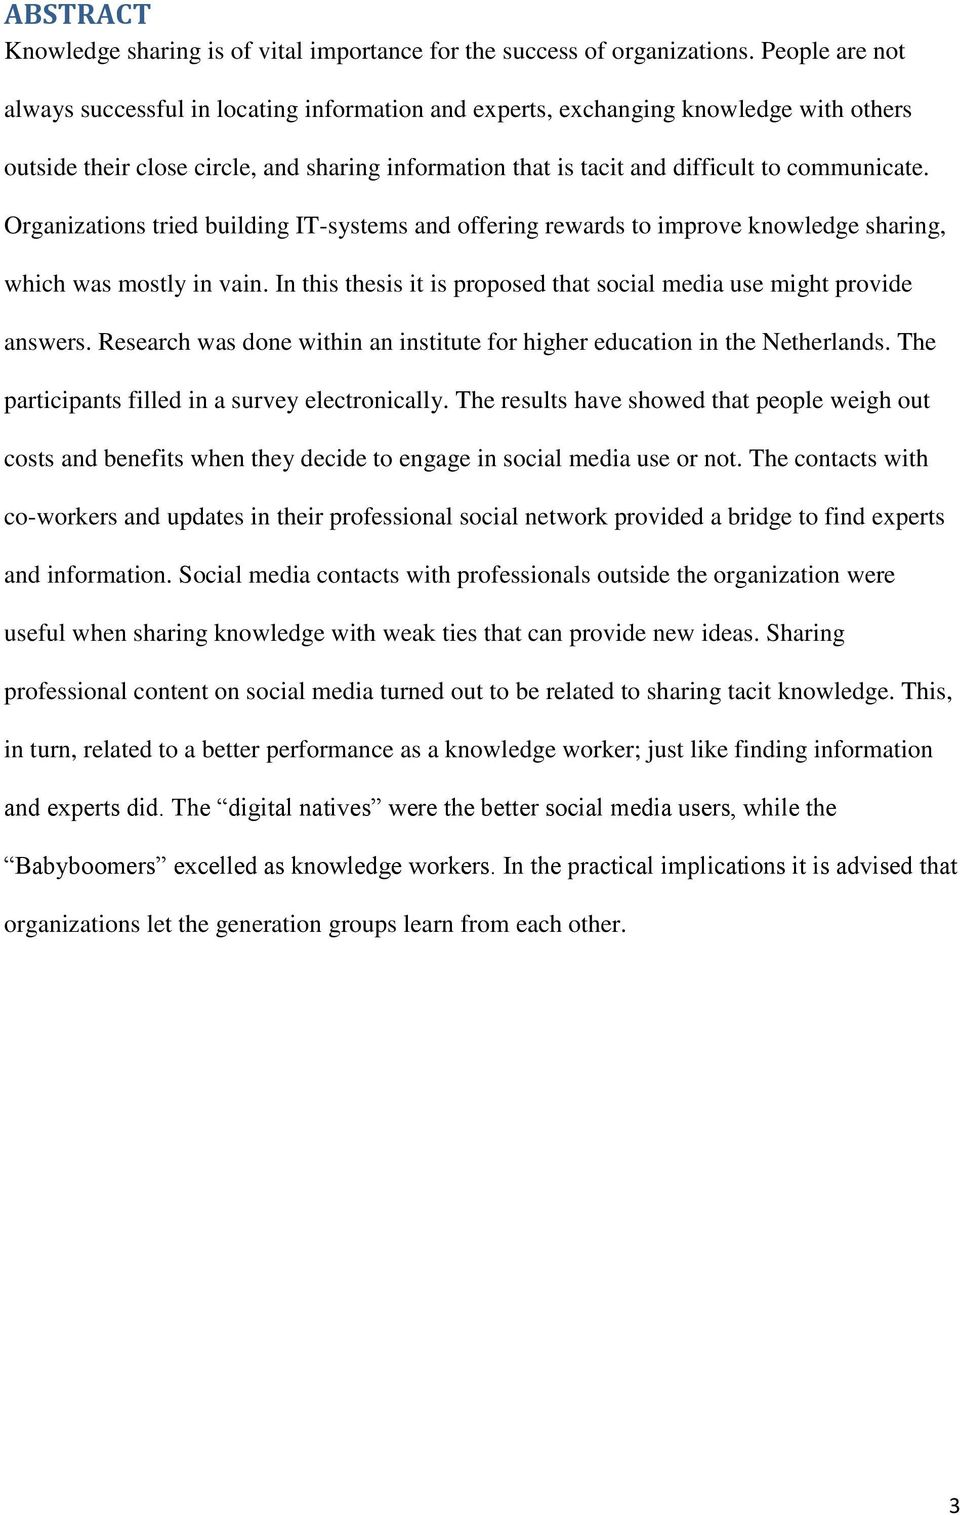 Organizations tried building IT-systems and offering rewards to improve knowledge sharing, which was mostly in vain. In this thesis it is proposed that social media use might provide answers.